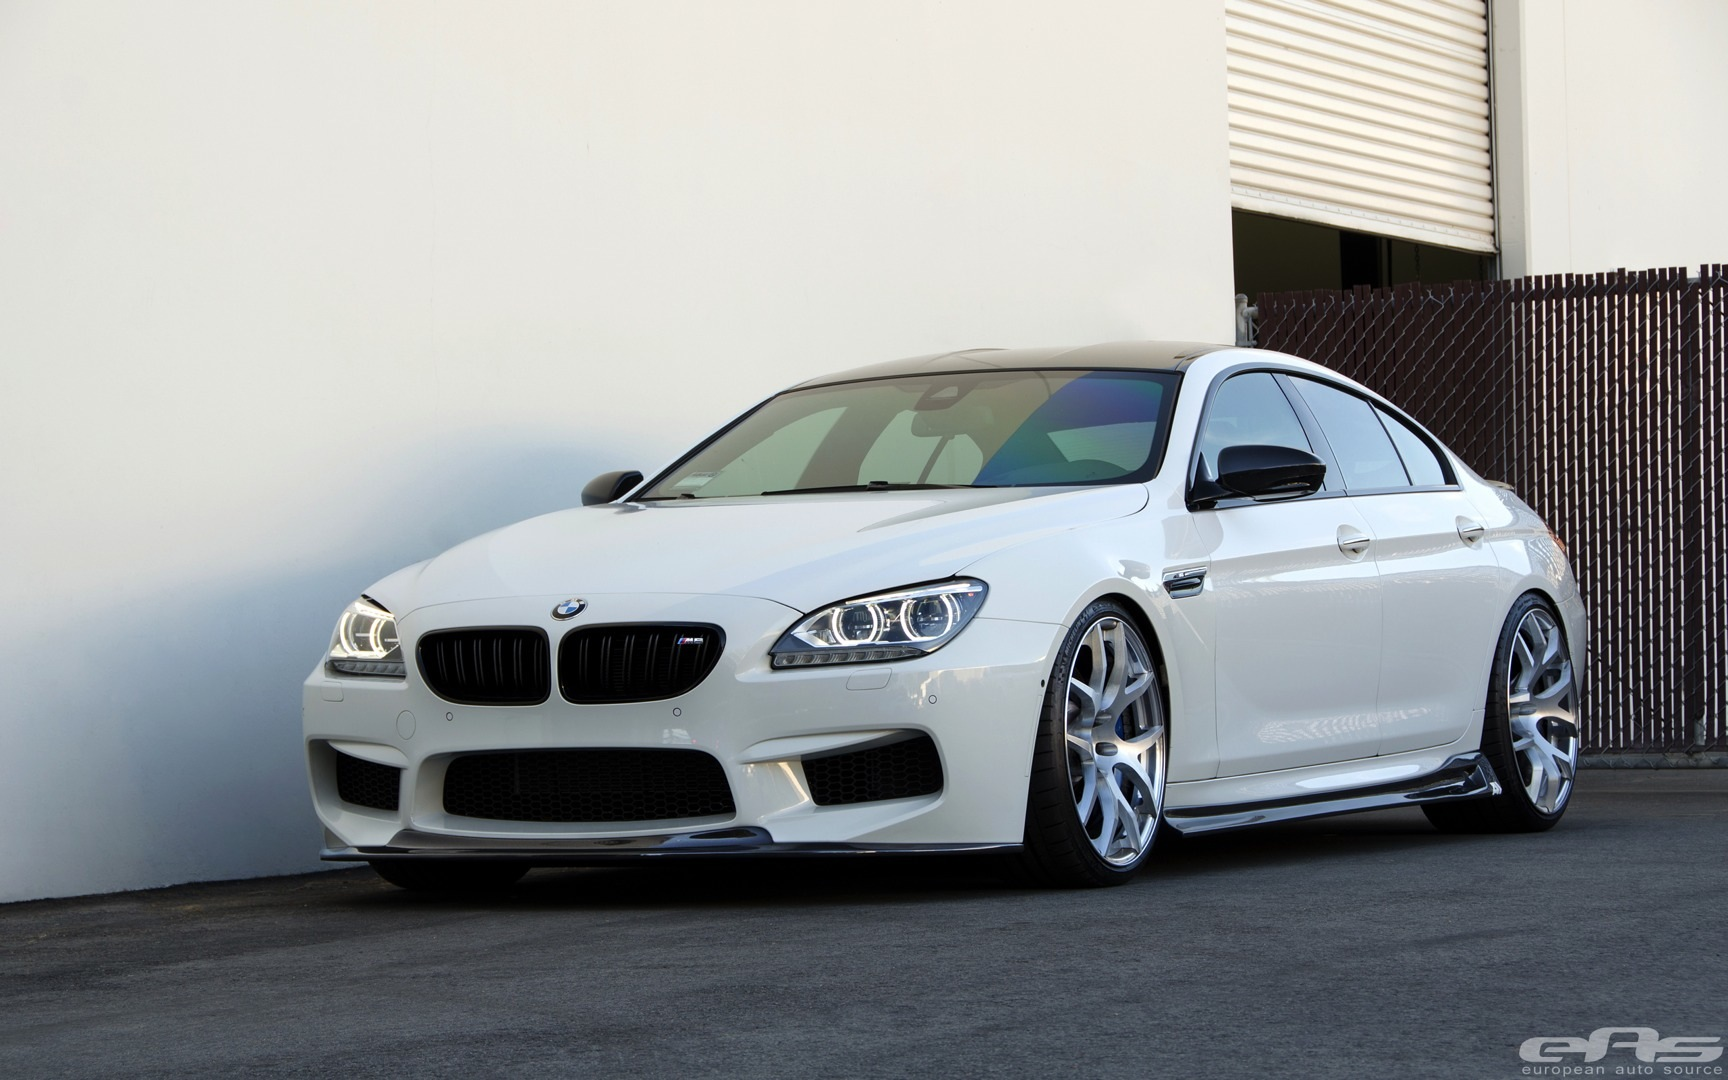 stunning alpine white bmw m6 gran coupe gets arkym body kit autoevolution. Black Bedroom Furniture Sets. Home Design Ideas